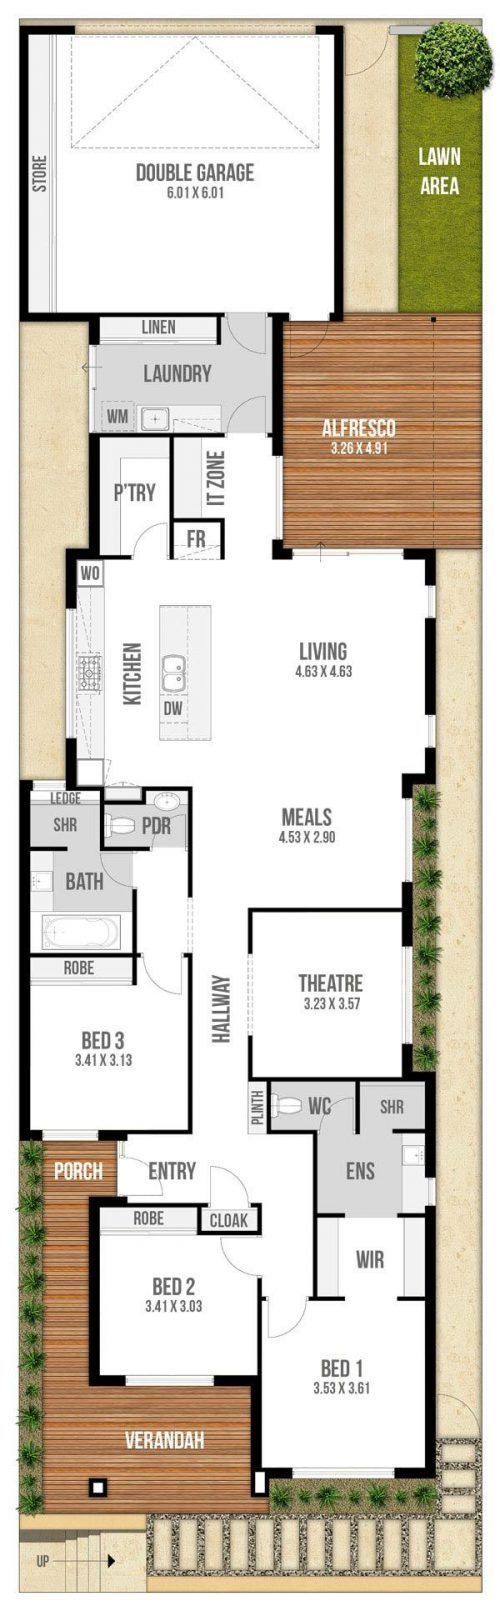 52 Best House Floor Plans By Boyd Design Images On